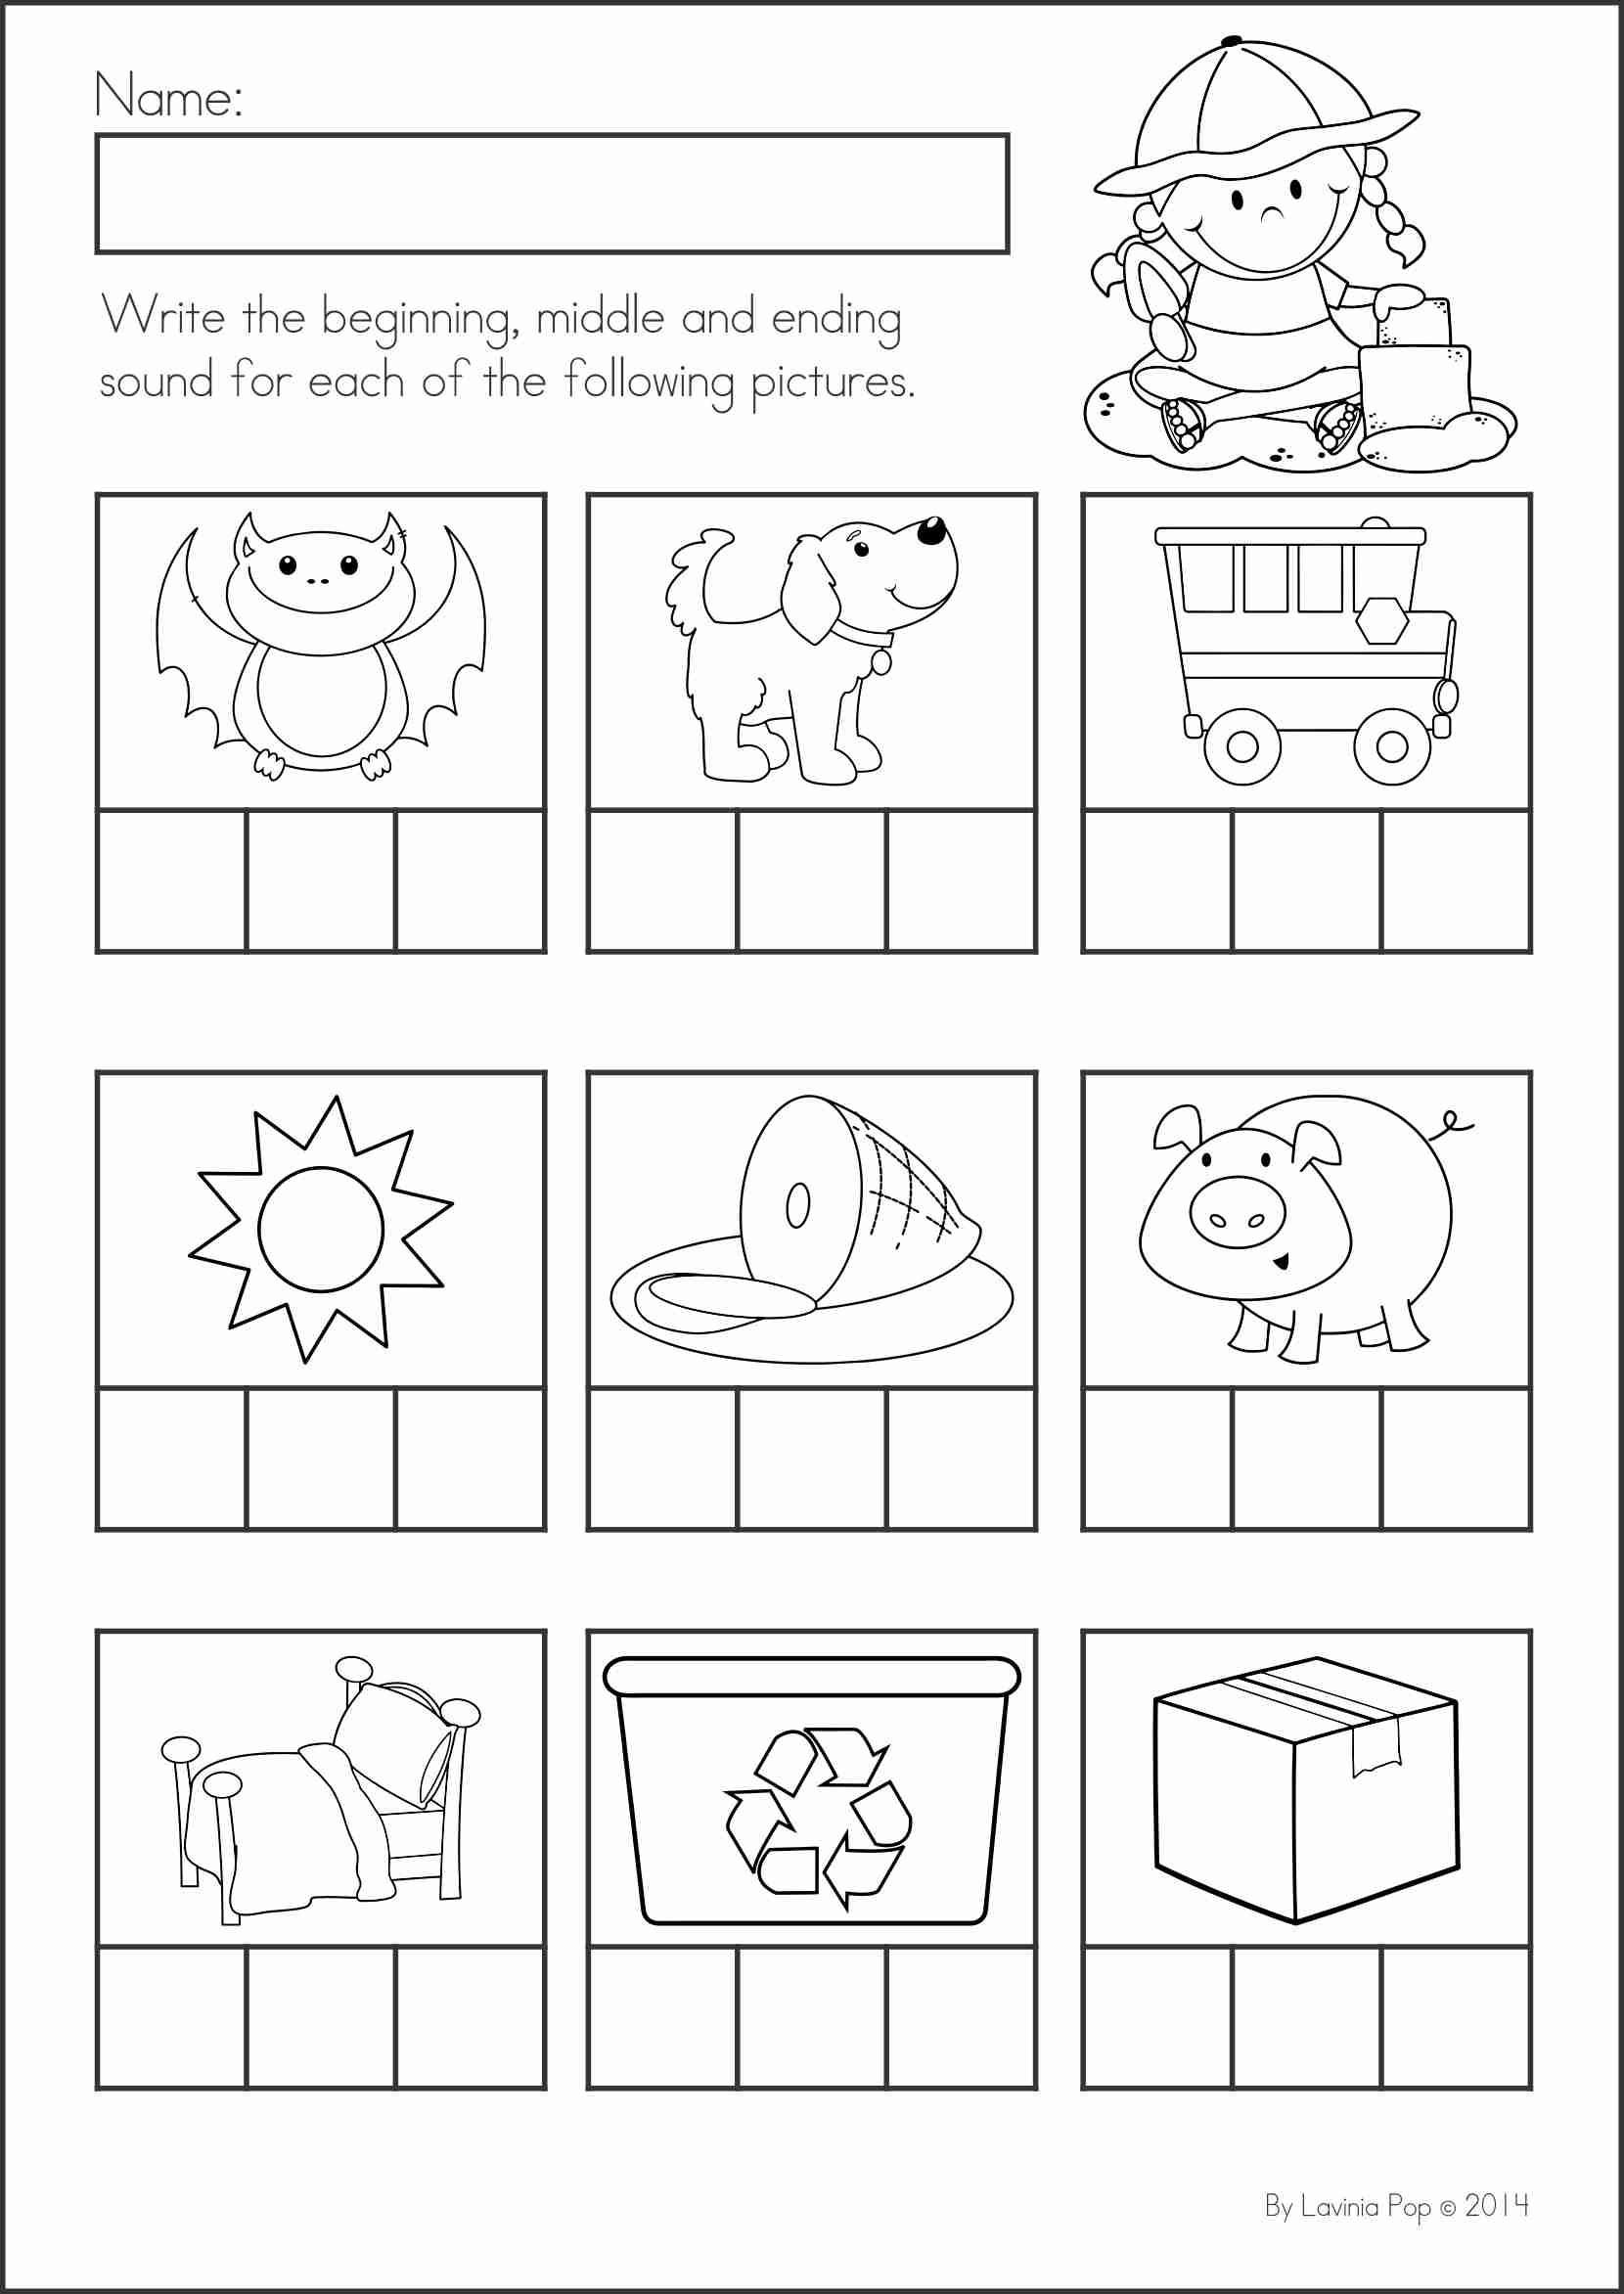 Middle sound Worksheets for Kindergarten Pin by Annette Maier On Education